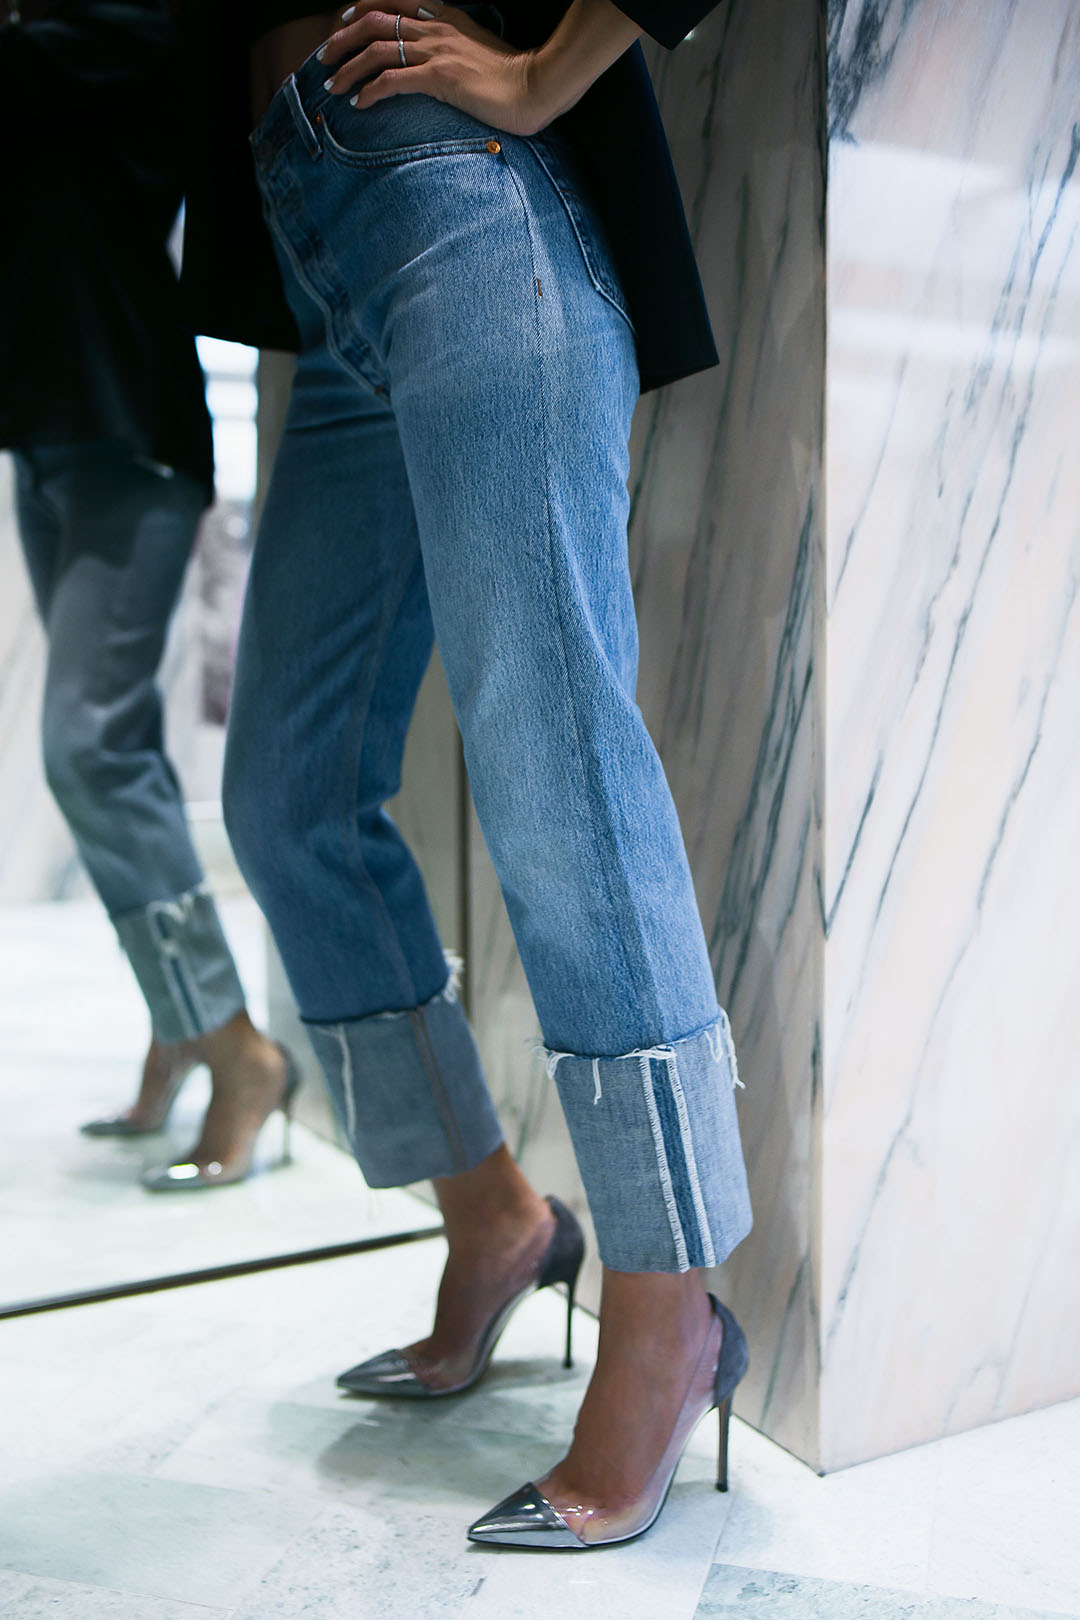 The_Webster_Redone_Jeans_Gianvito_Rossi_Pumps.jpg